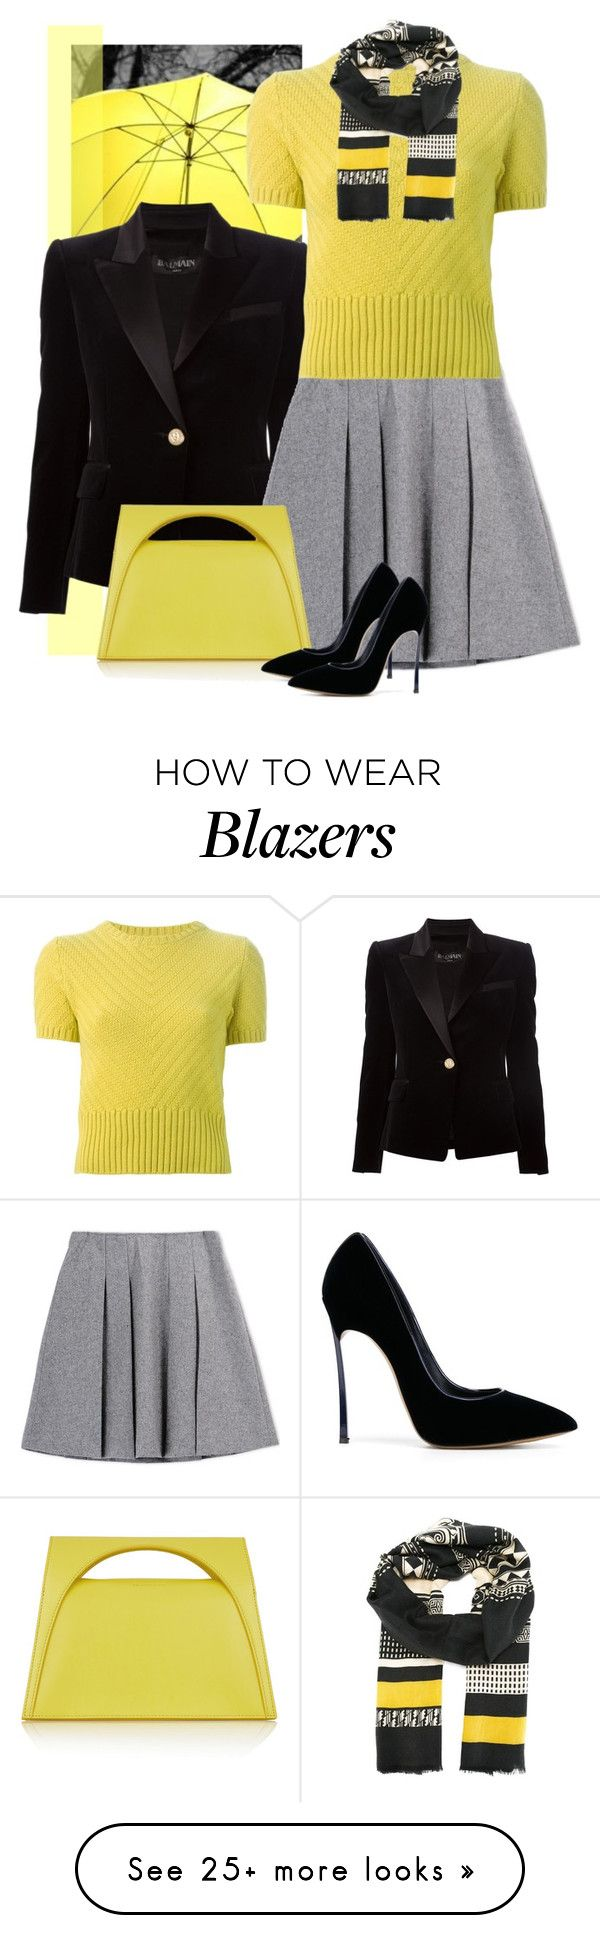 """ygb"" by bodangela on Polyvore featuring Balmain, Marni, J.W. Anderson, Casadei and Etro"